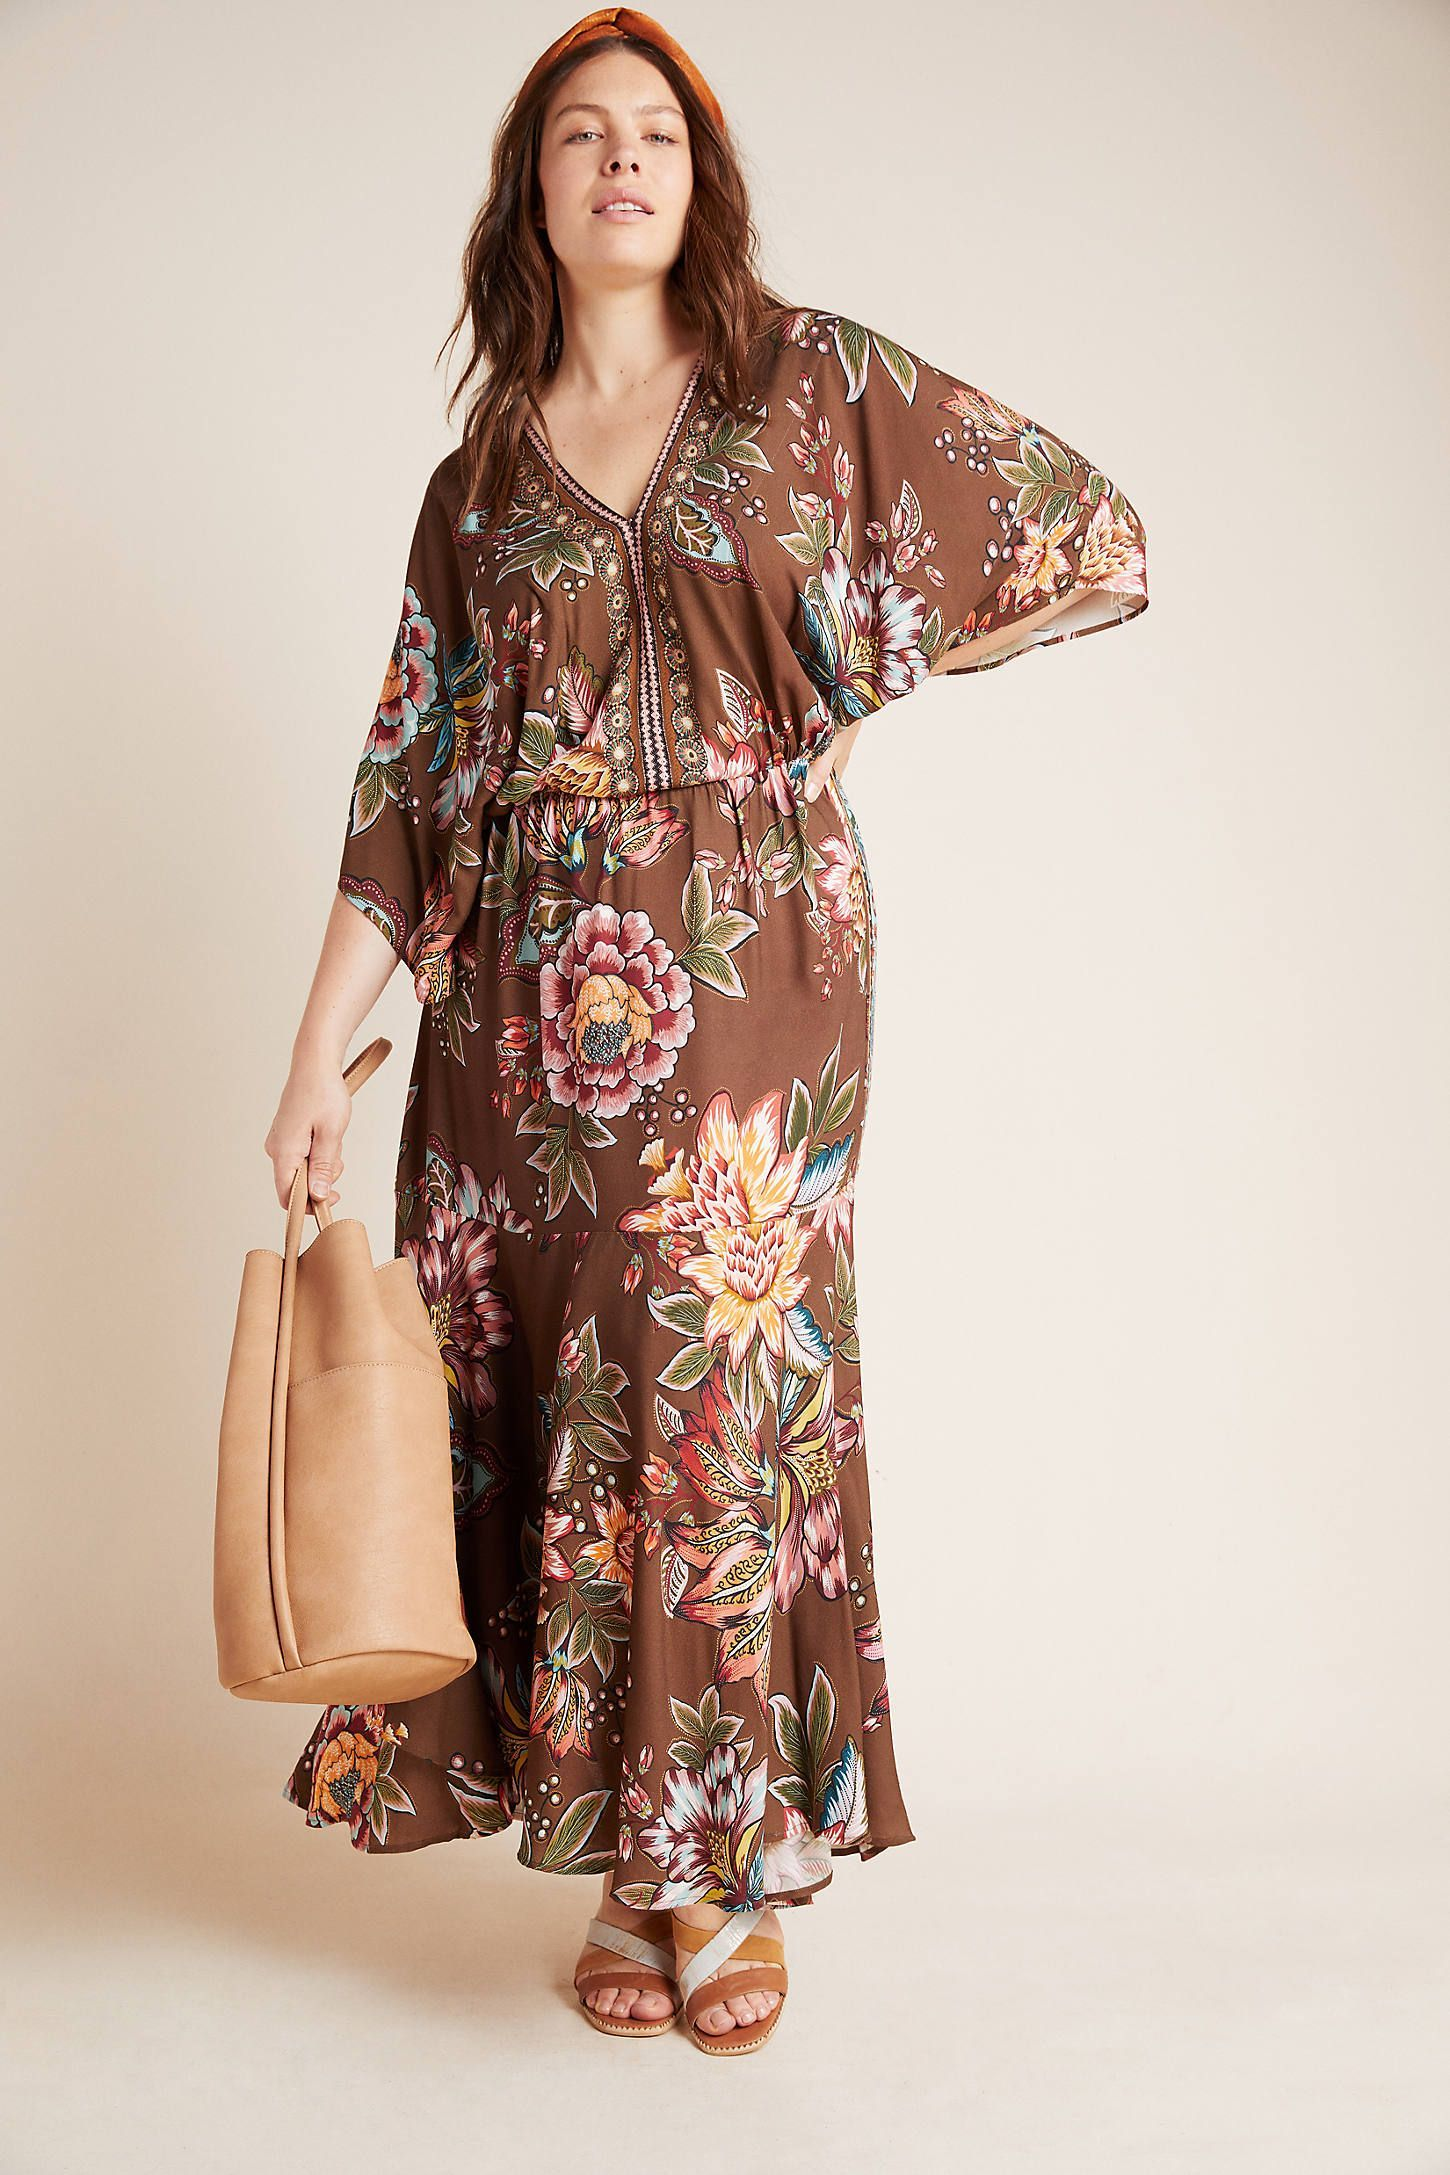 Plus Size Farm Rio Valentina Maxi Dress In Assorted Size 3 X Womens Dresses At Anthropologie Plus Size Max Plus Size Maxi Dresses Fashion Plus Size Dresses [ 2175 x 1450 Pixel ]